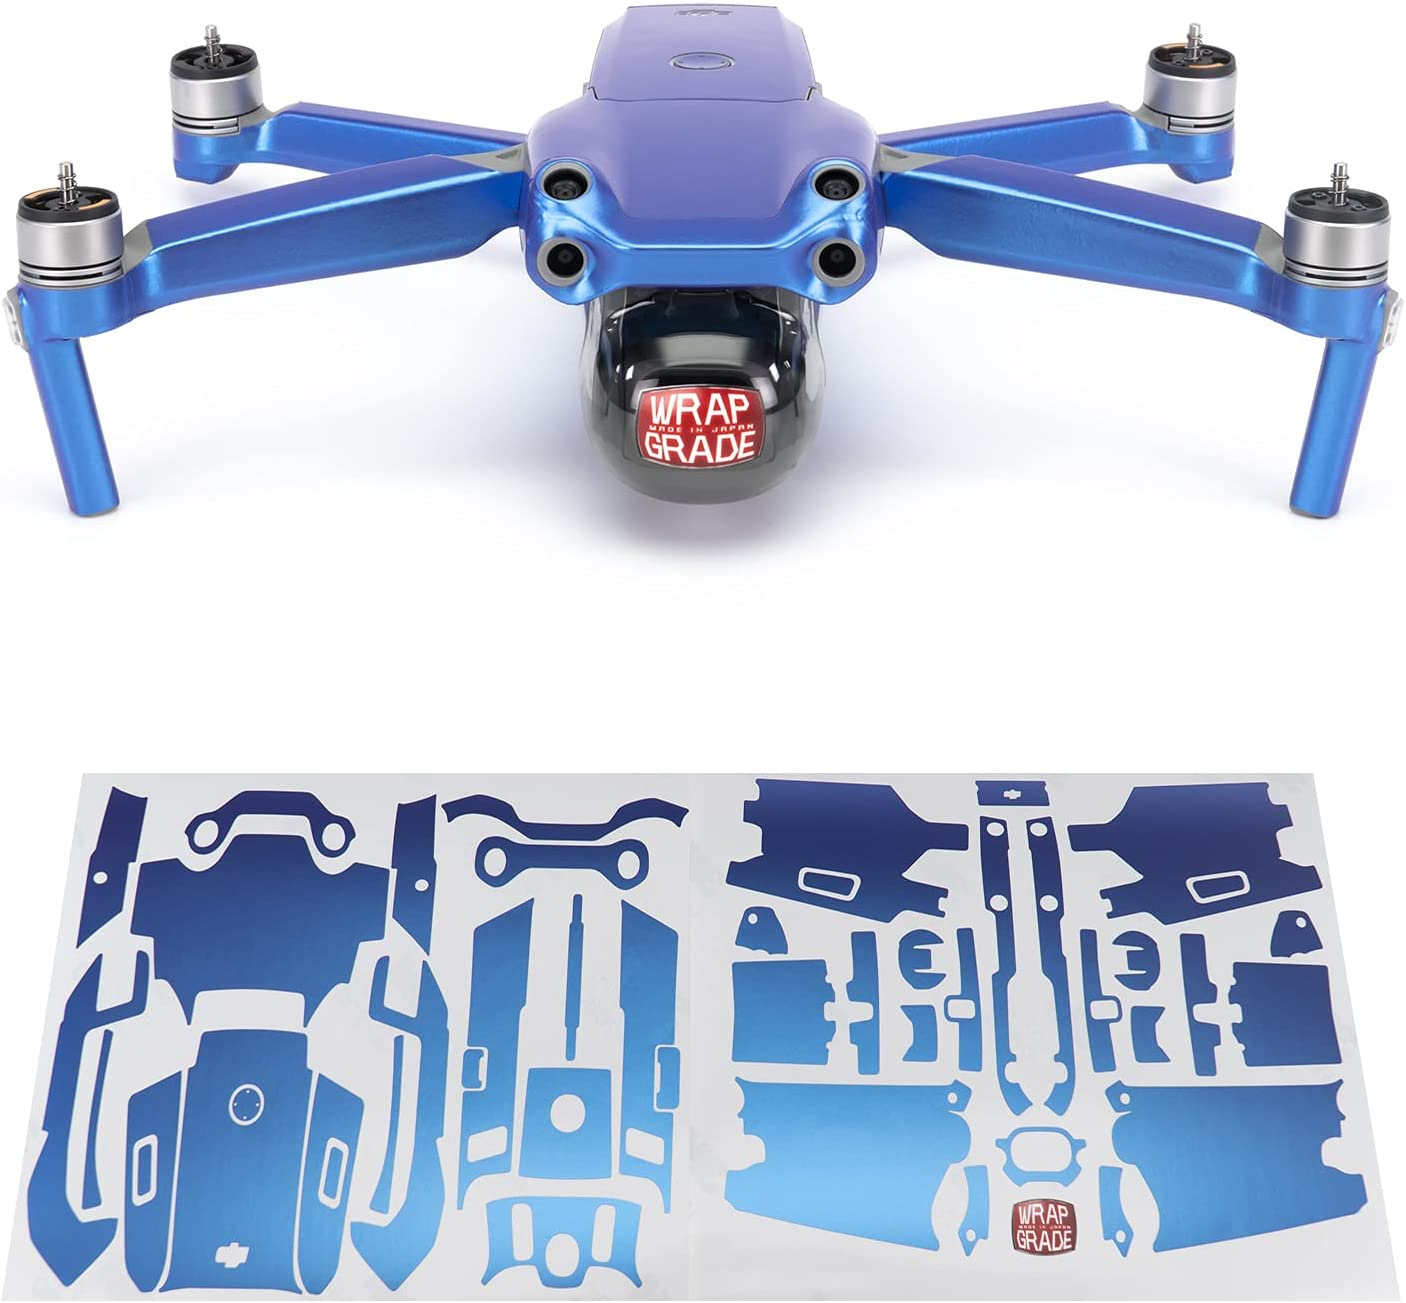 Wrapgrade Max 53% OFF Main Unit Skin 55% OFF DJI 2S Celeste with Compatible Air